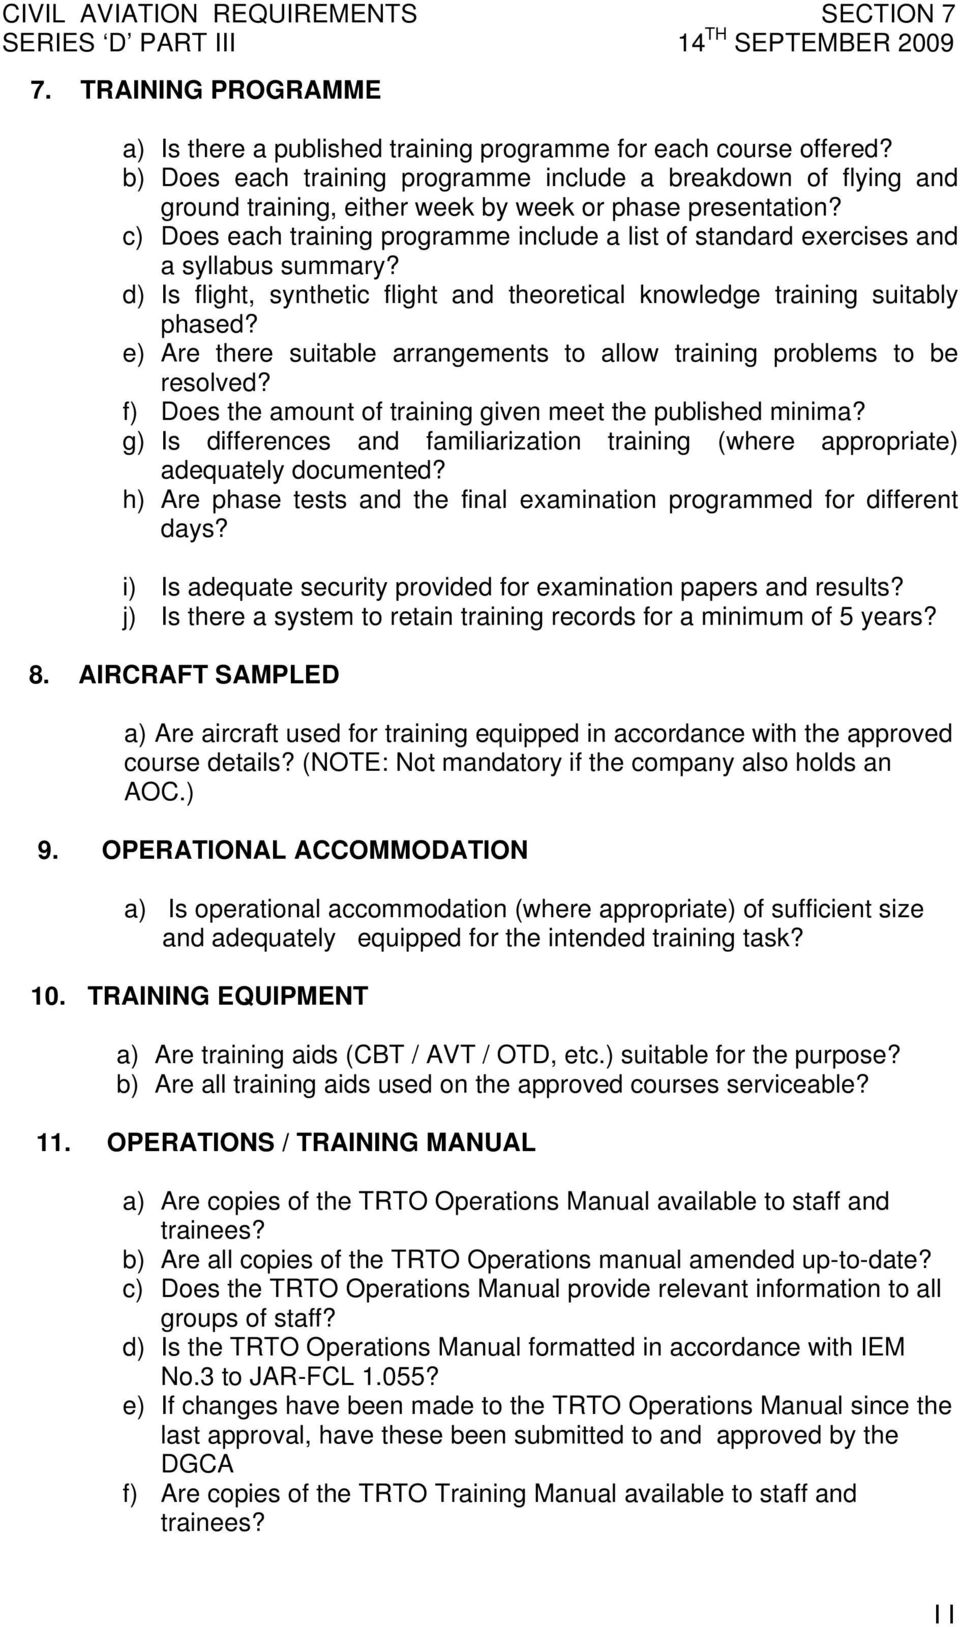 c) Does each training programme include a list of standard exercises and a syllabus summary? d) Is flight, synthetic flight and theoretical knowledge training suitably phased?